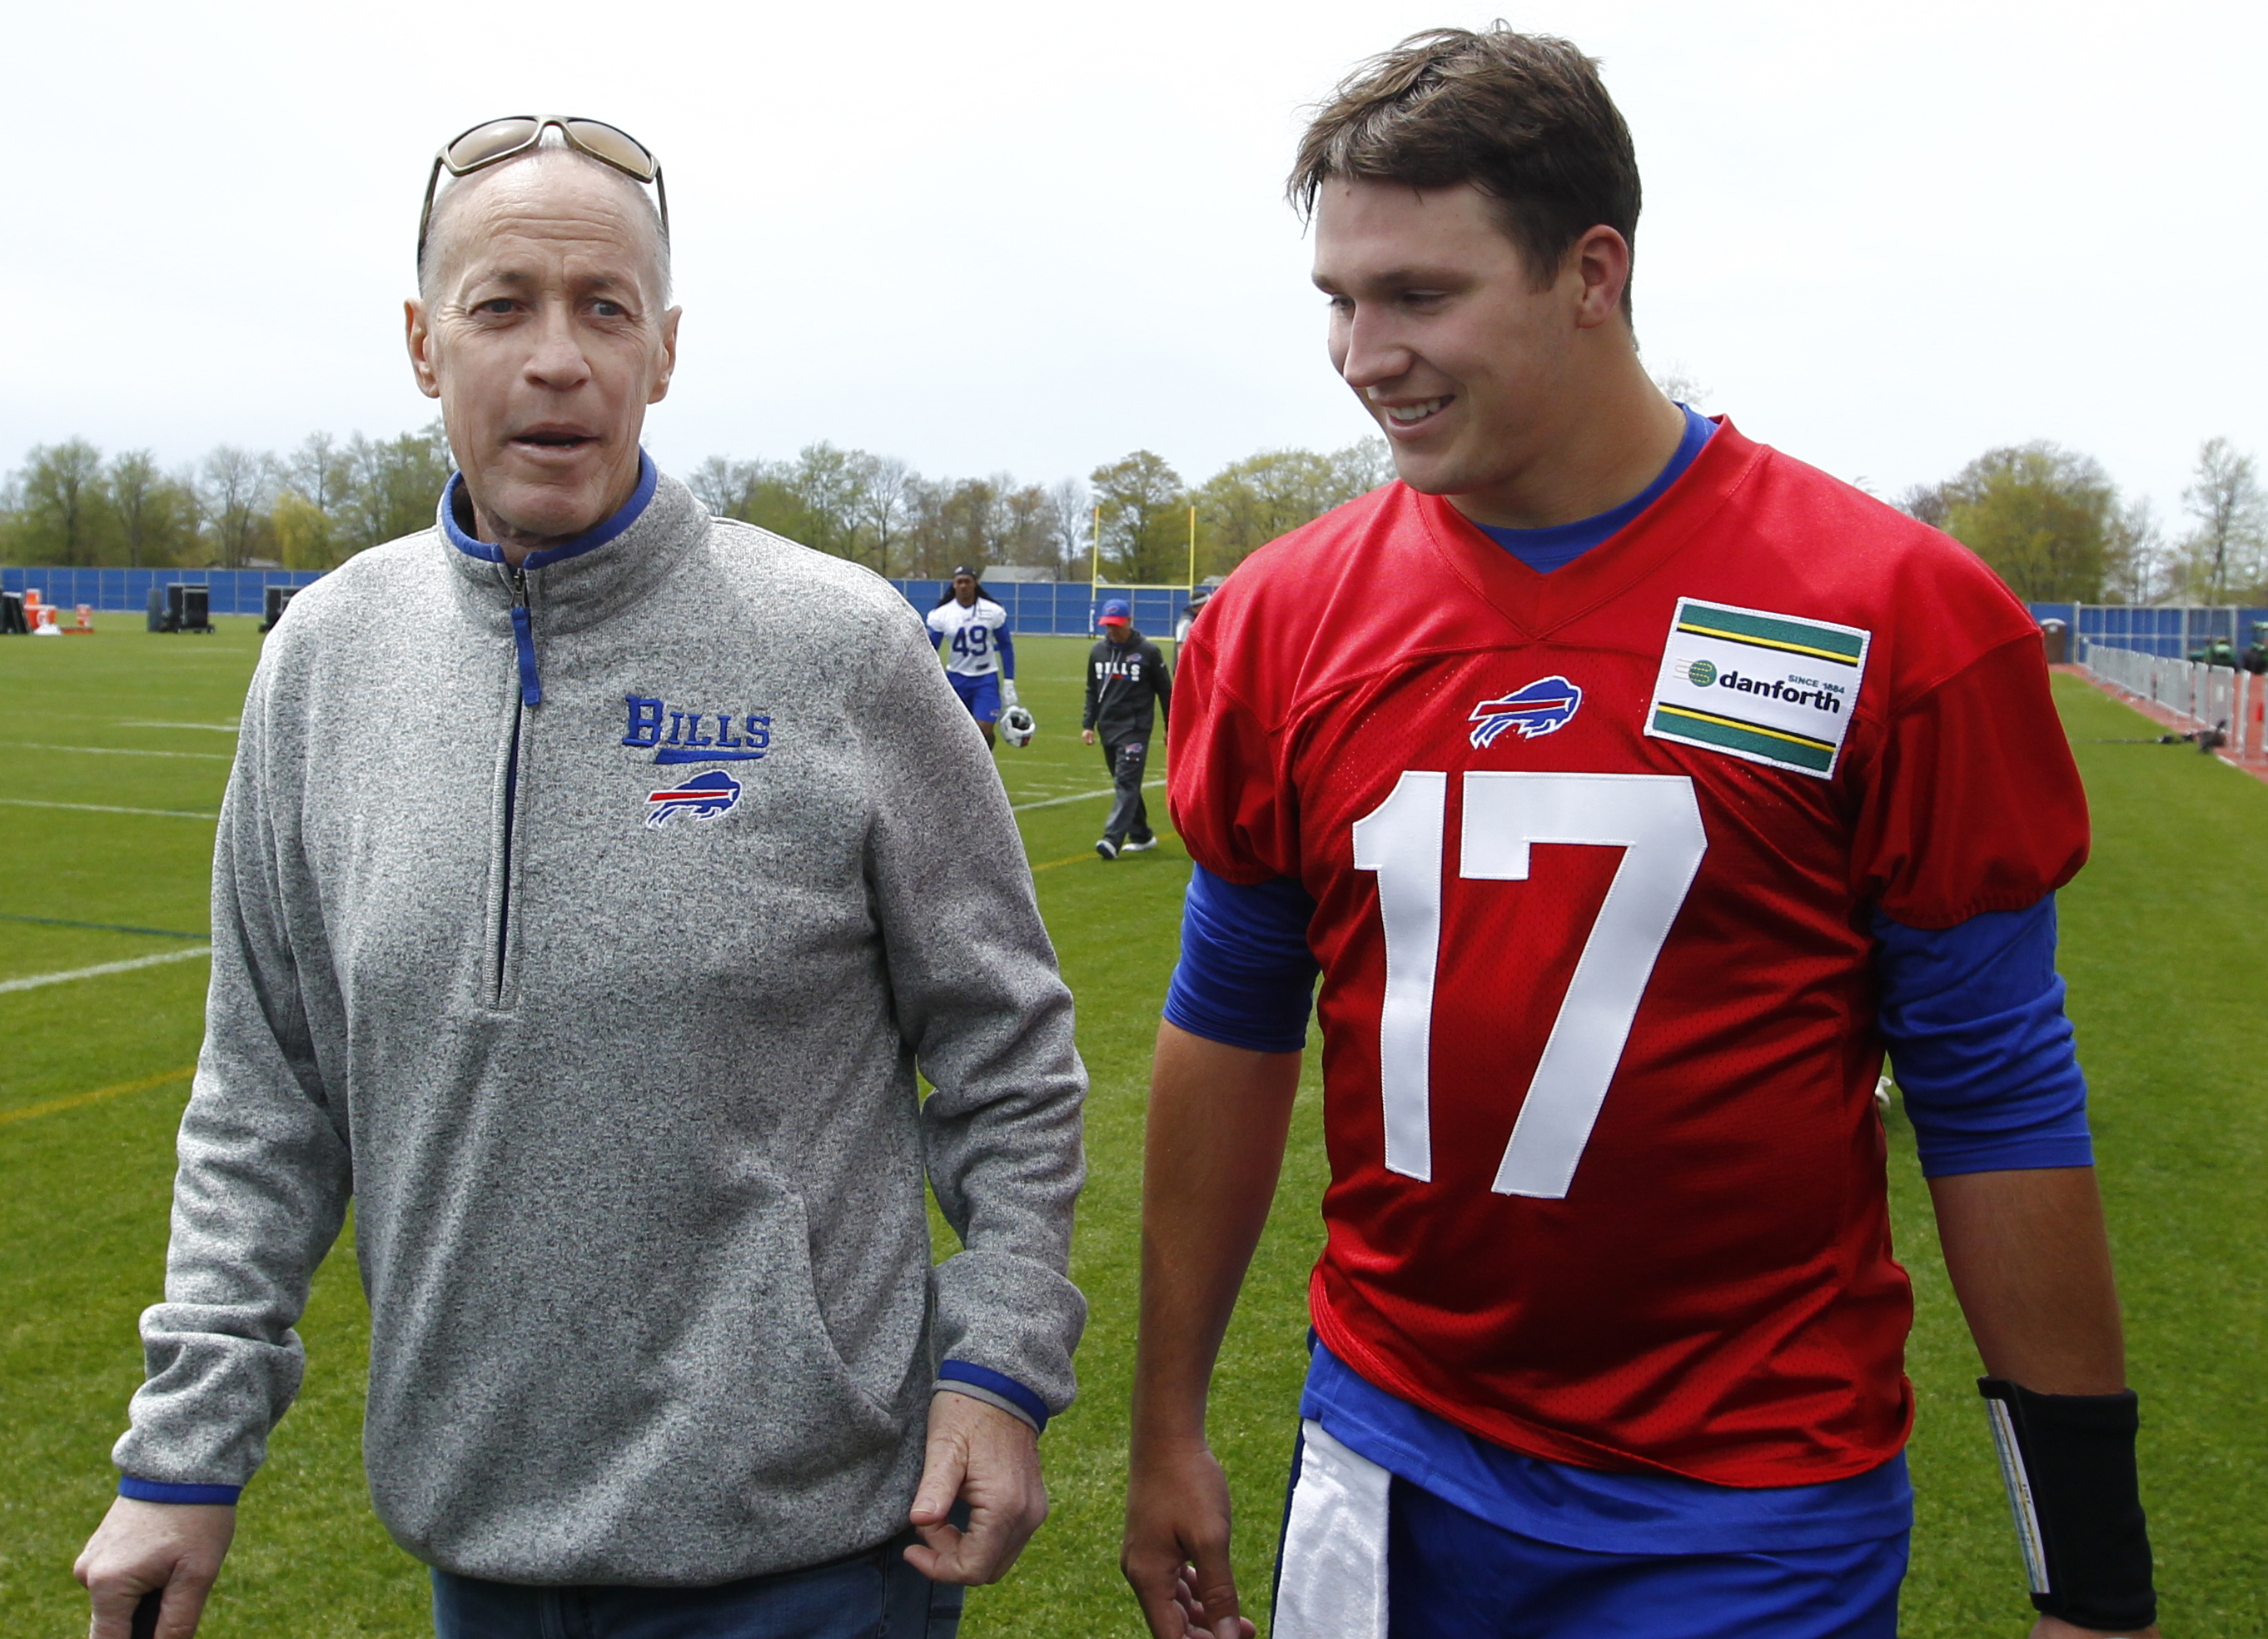 Bills legend Jim Kelly and Josh Allen had same 'Only team in NY' quote 33 years apart